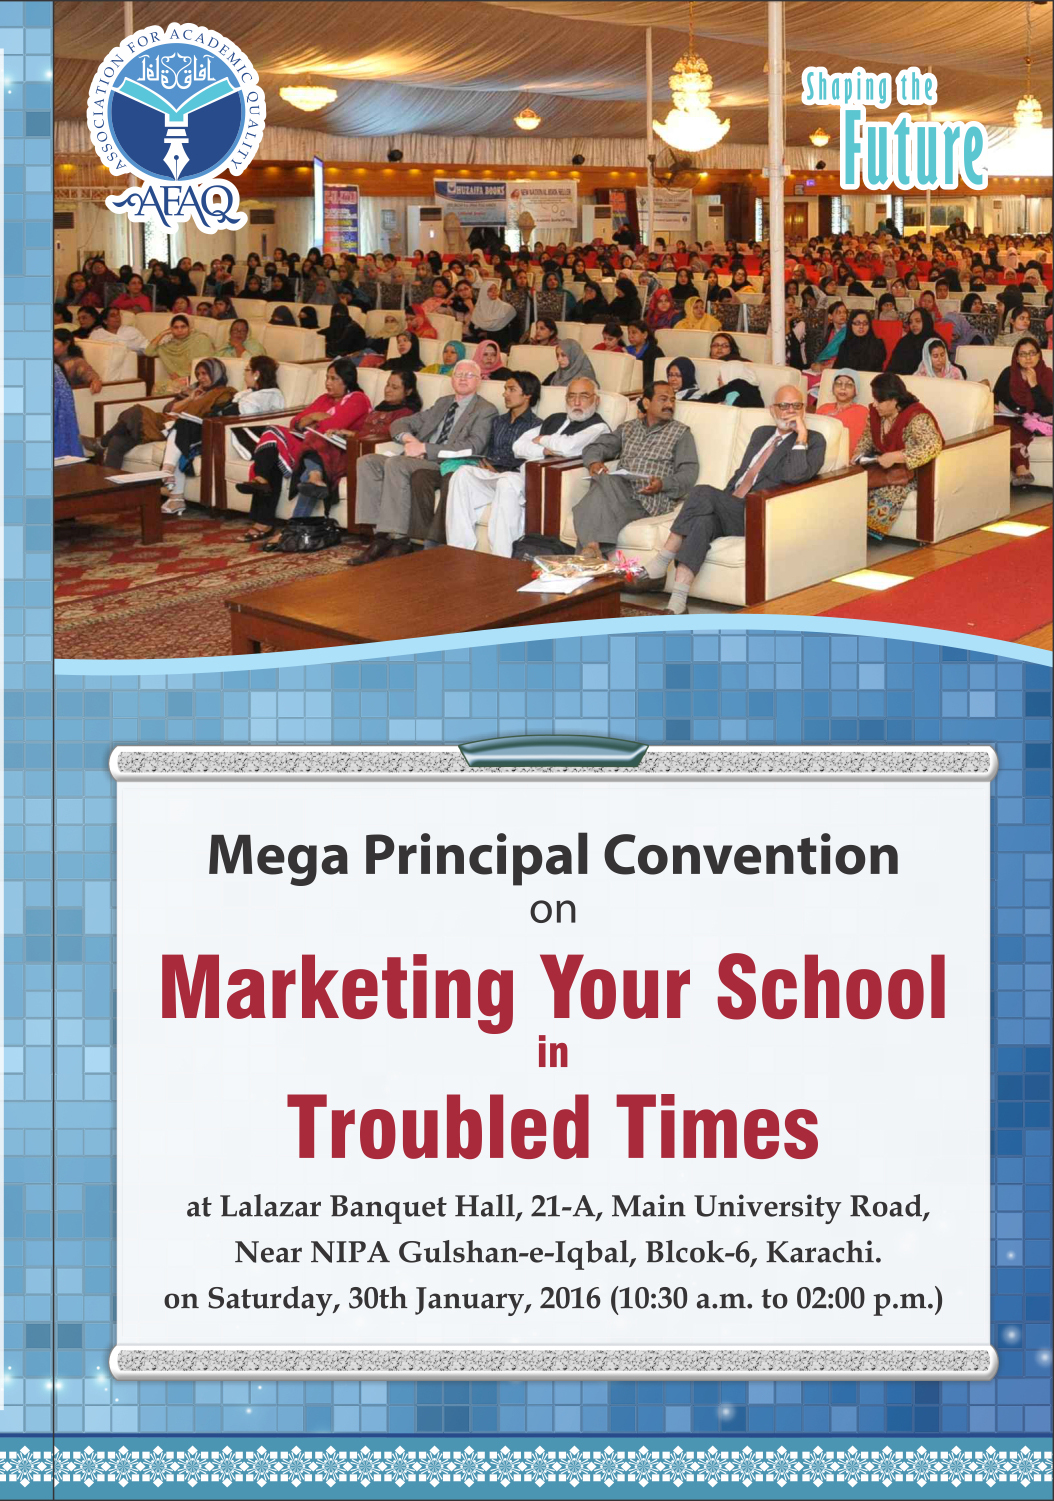 PC Invitation Card for Karachi (East) Marketing School30 Jan,22222